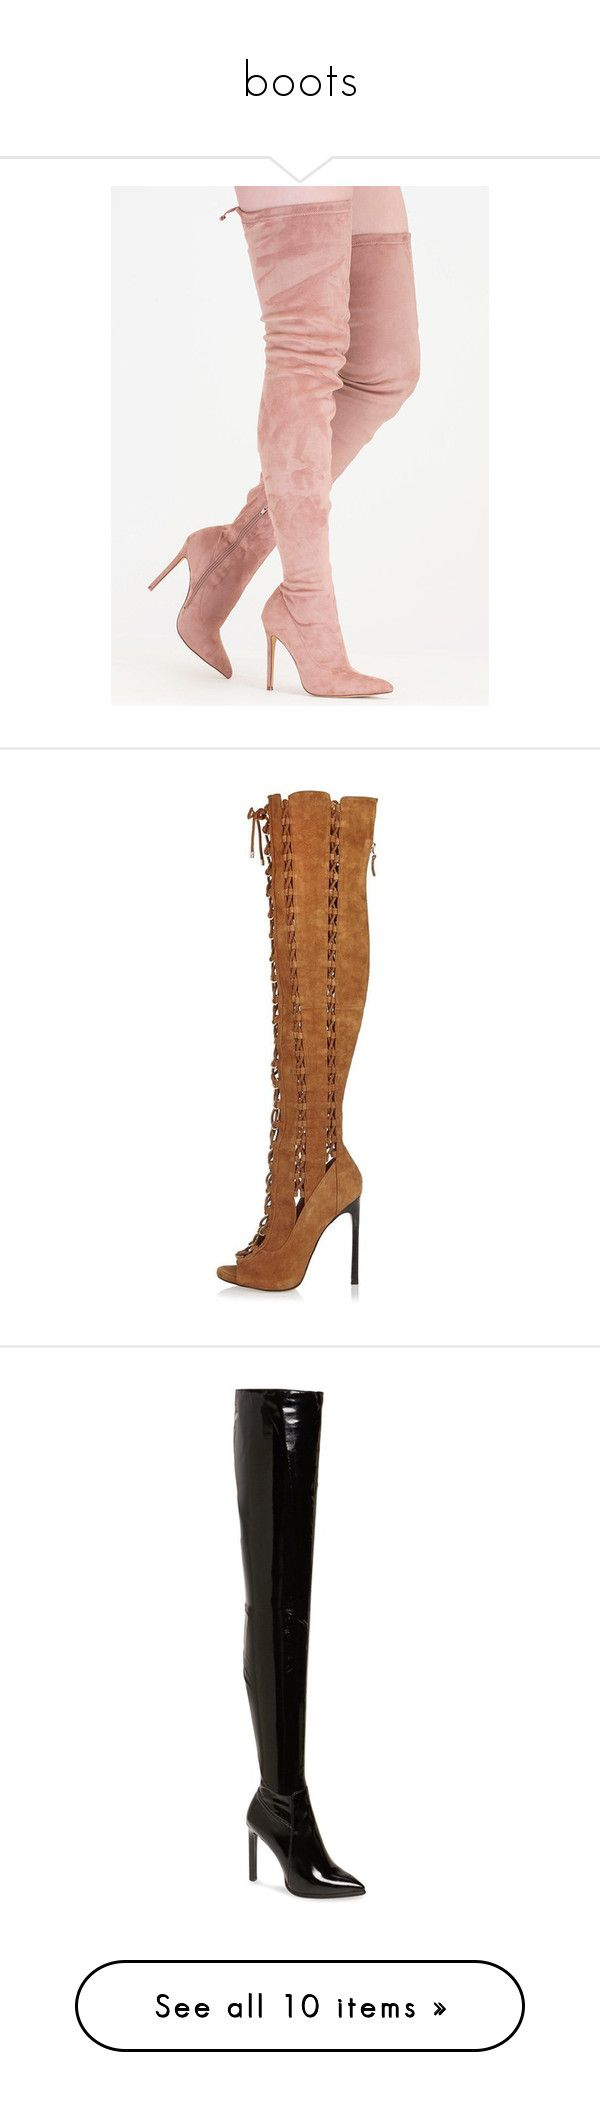 """""""boots"""" by aneliceblack ❤ liked on Polyvore featuring shoes, boots, heels, over-the-knee boots, pink, over-knee boots, stretch knee high boots, knee high stiletto boots, pink knee high boots and stretchy knee high boots"""